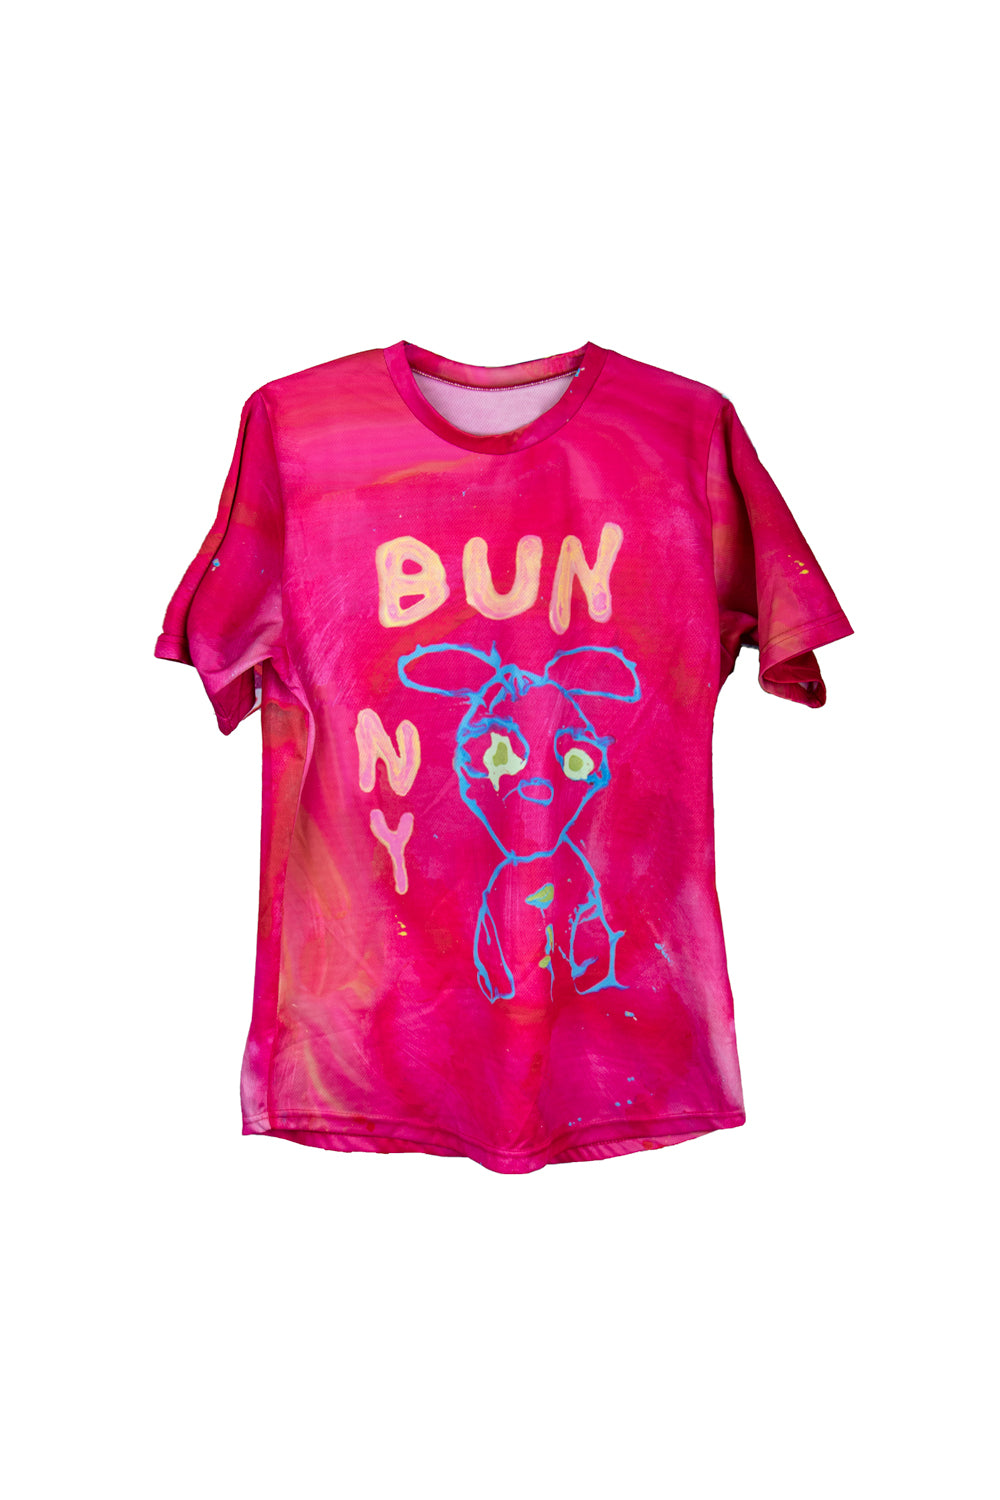 Bunny Shirt T-Shirt by Jumper Maybach®